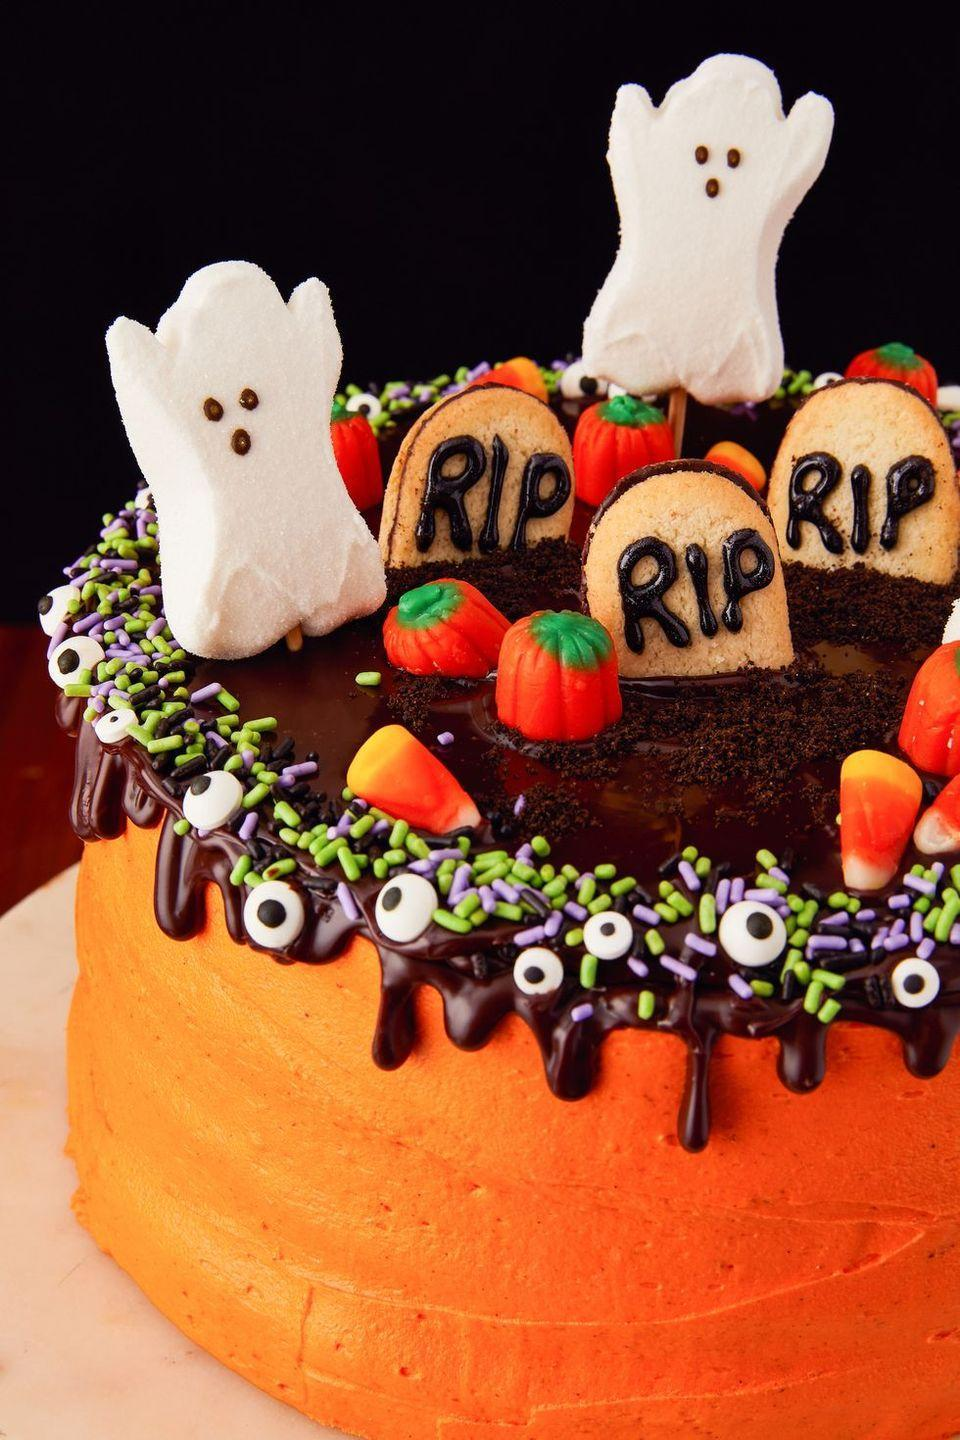 """<p>There's never a bad occasion for a cake, and this one has all the Halloween flair you could want. </p><p><strong><em>Get the recipe at <a href=""""https://www.delish.com/cooking/recipe-ideas/a23712647/halloween-layer-cake-recipe/"""" rel=""""nofollow noopener"""" target=""""_blank"""" data-ylk=""""slk:Delish"""" class=""""link rapid-noclick-resp"""">Delish</a>. </em></strong></p>"""